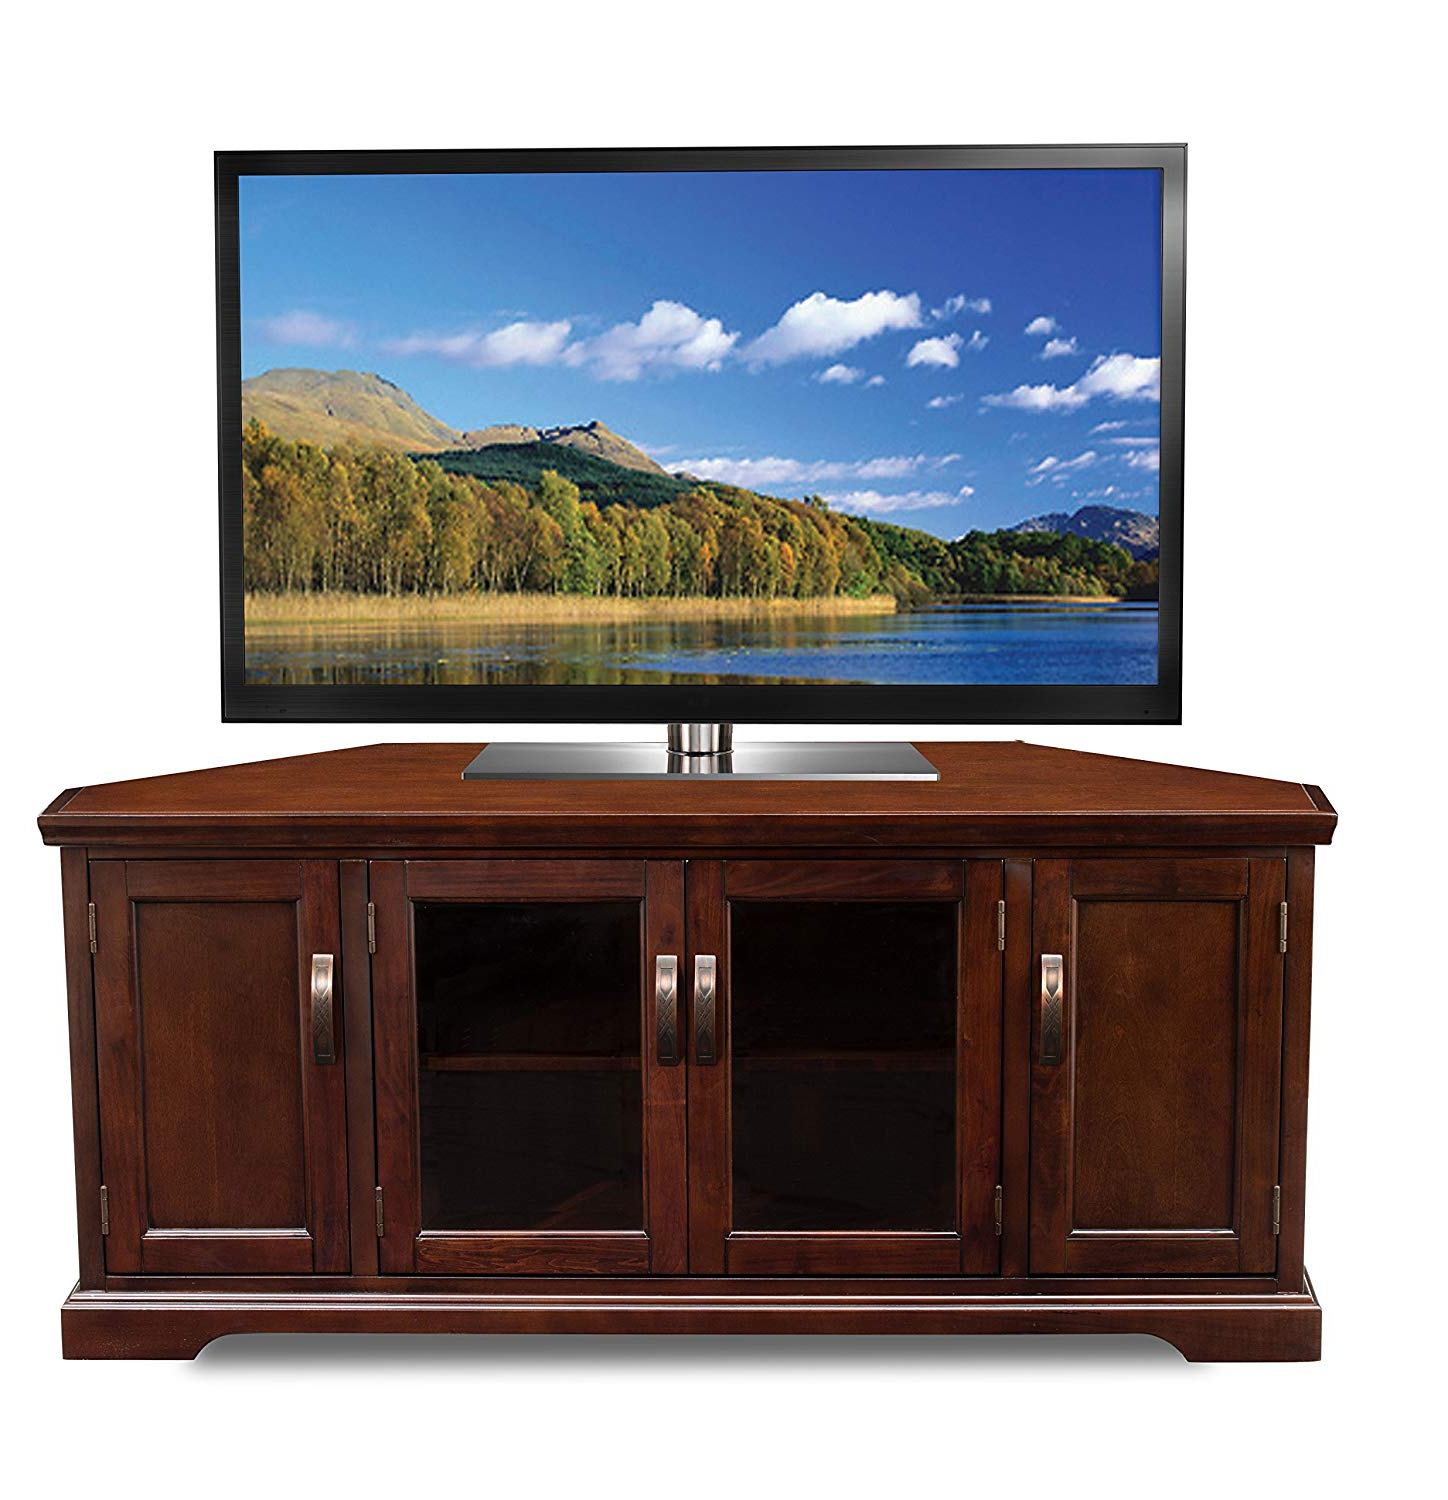 "Corner Tv Stands For 60 Inch Tv With Regard To Current Leick 81386 Chocolate Cherry Corner Tv Stand, 60"": Amazon (View 9 of 20)"